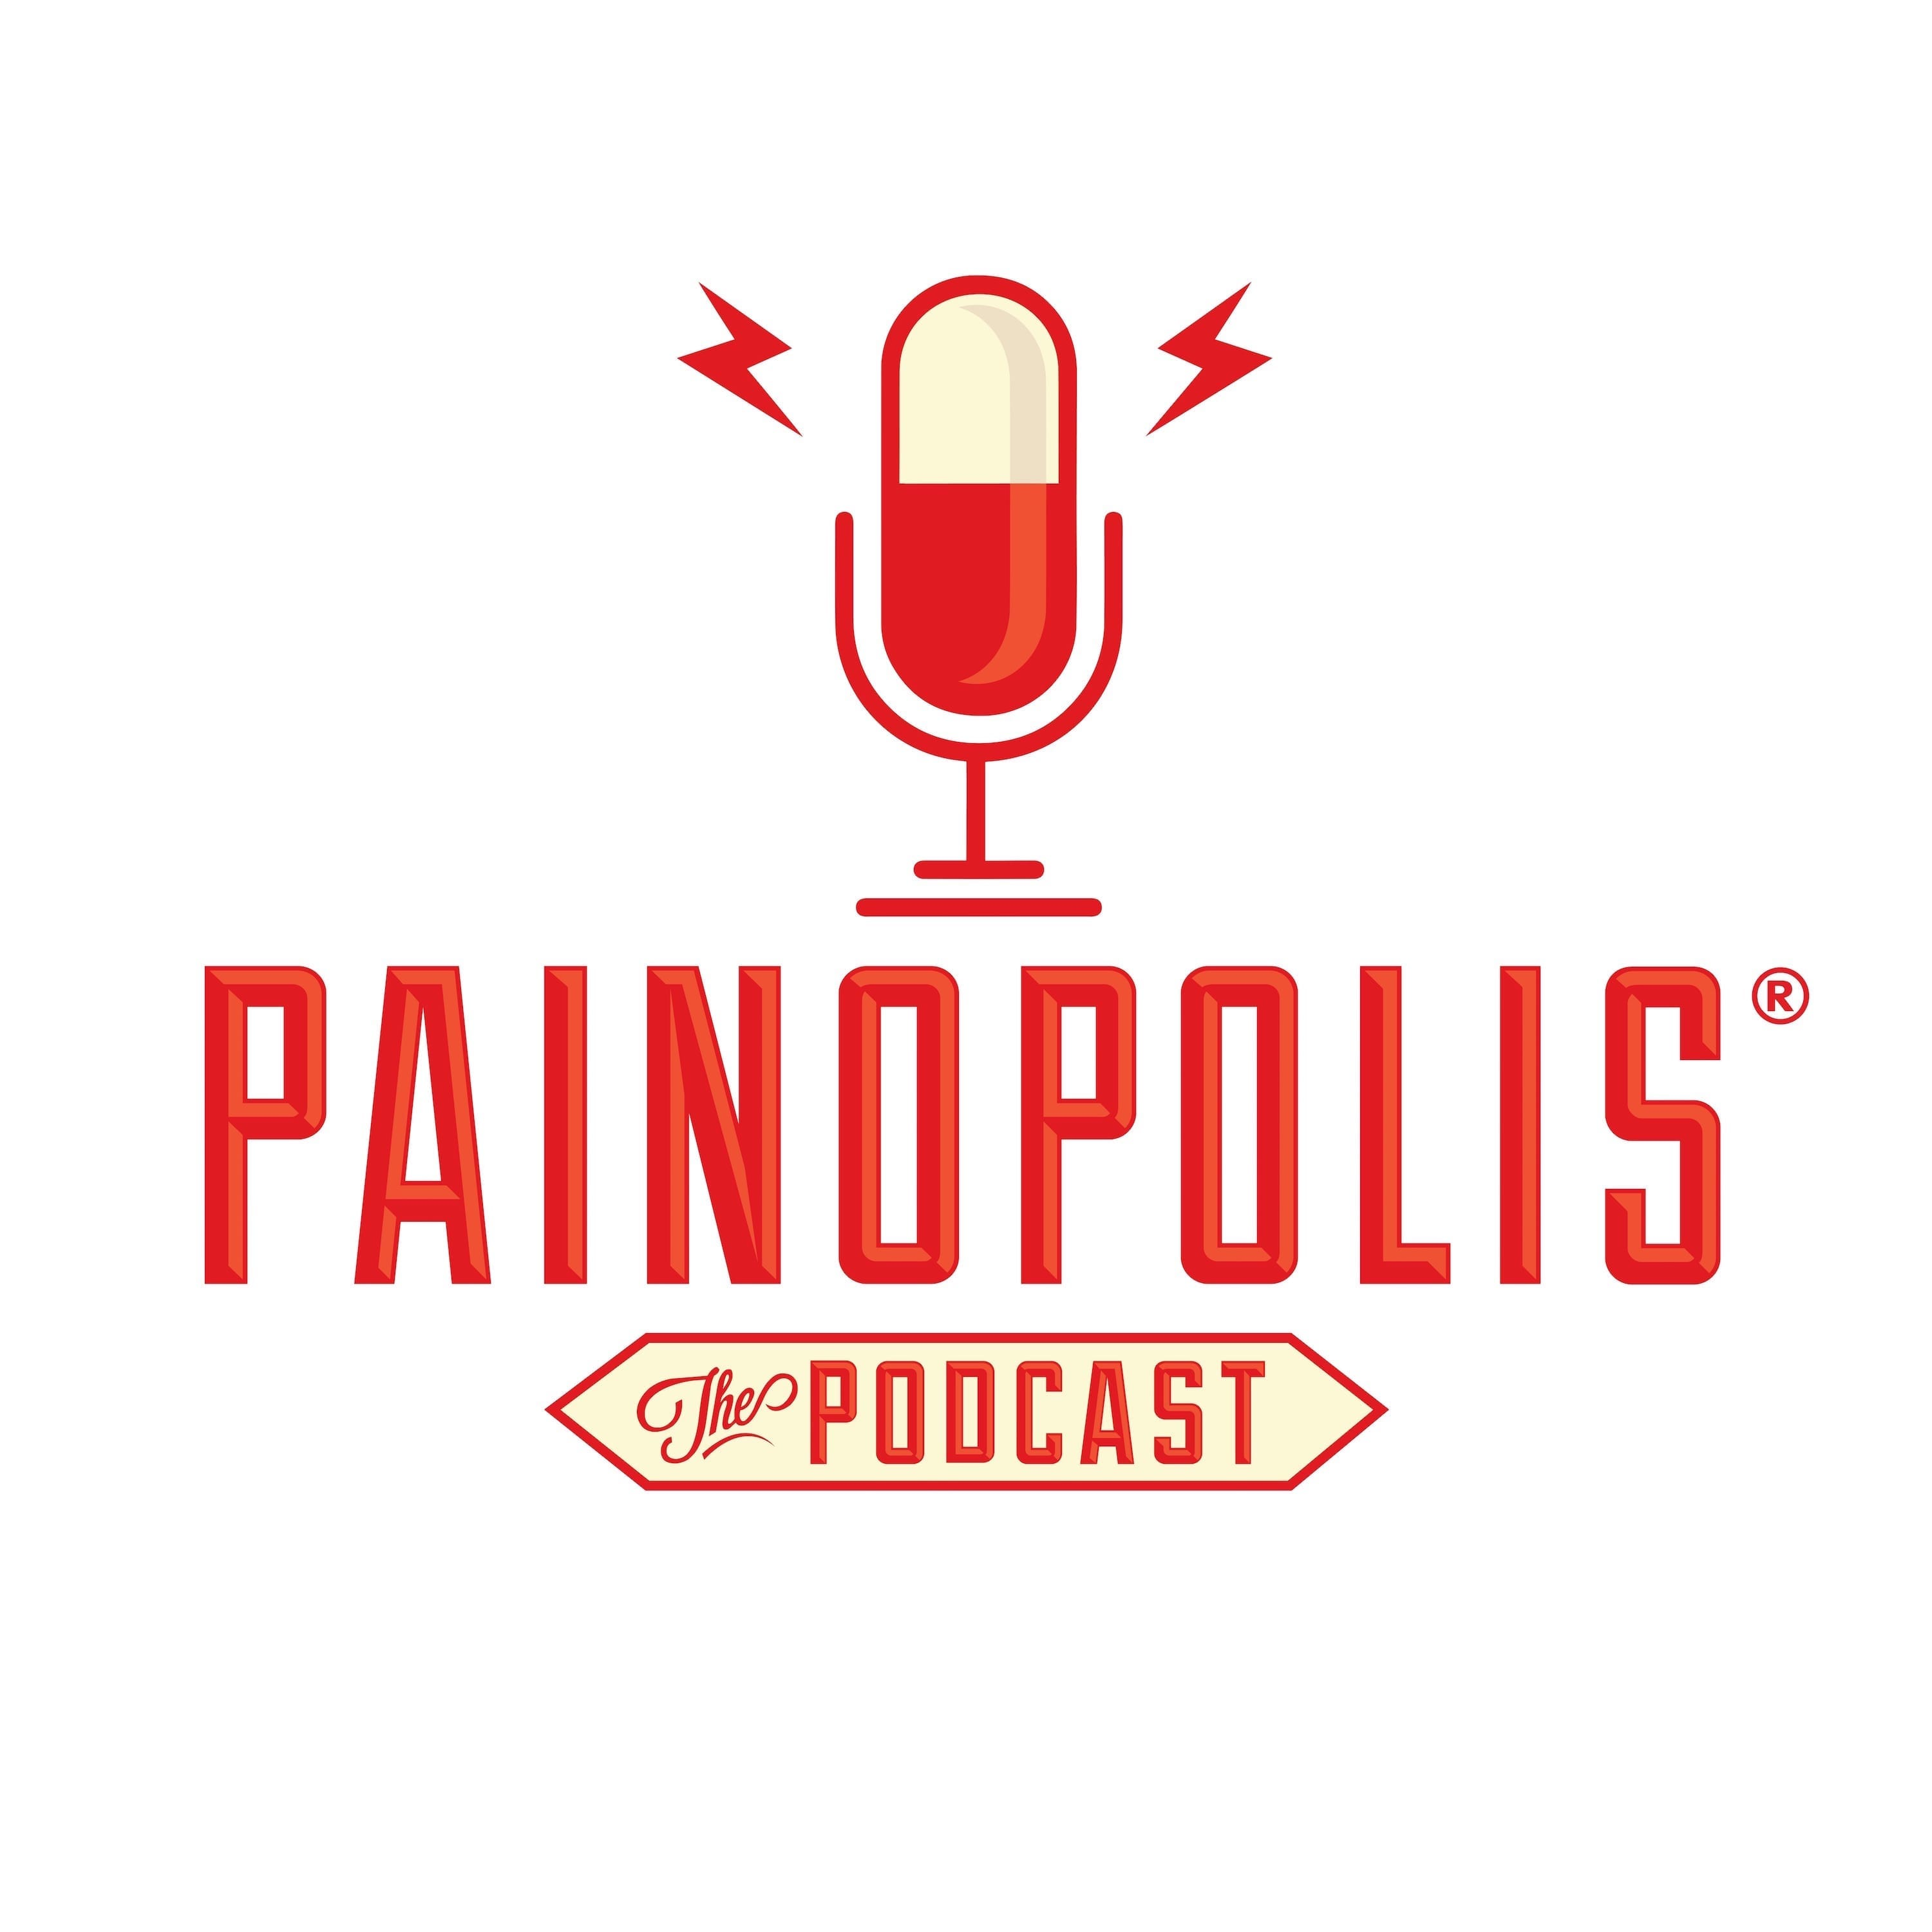 PAINOPOLIS: Prevailing over chronic pain, one defiant story at a time